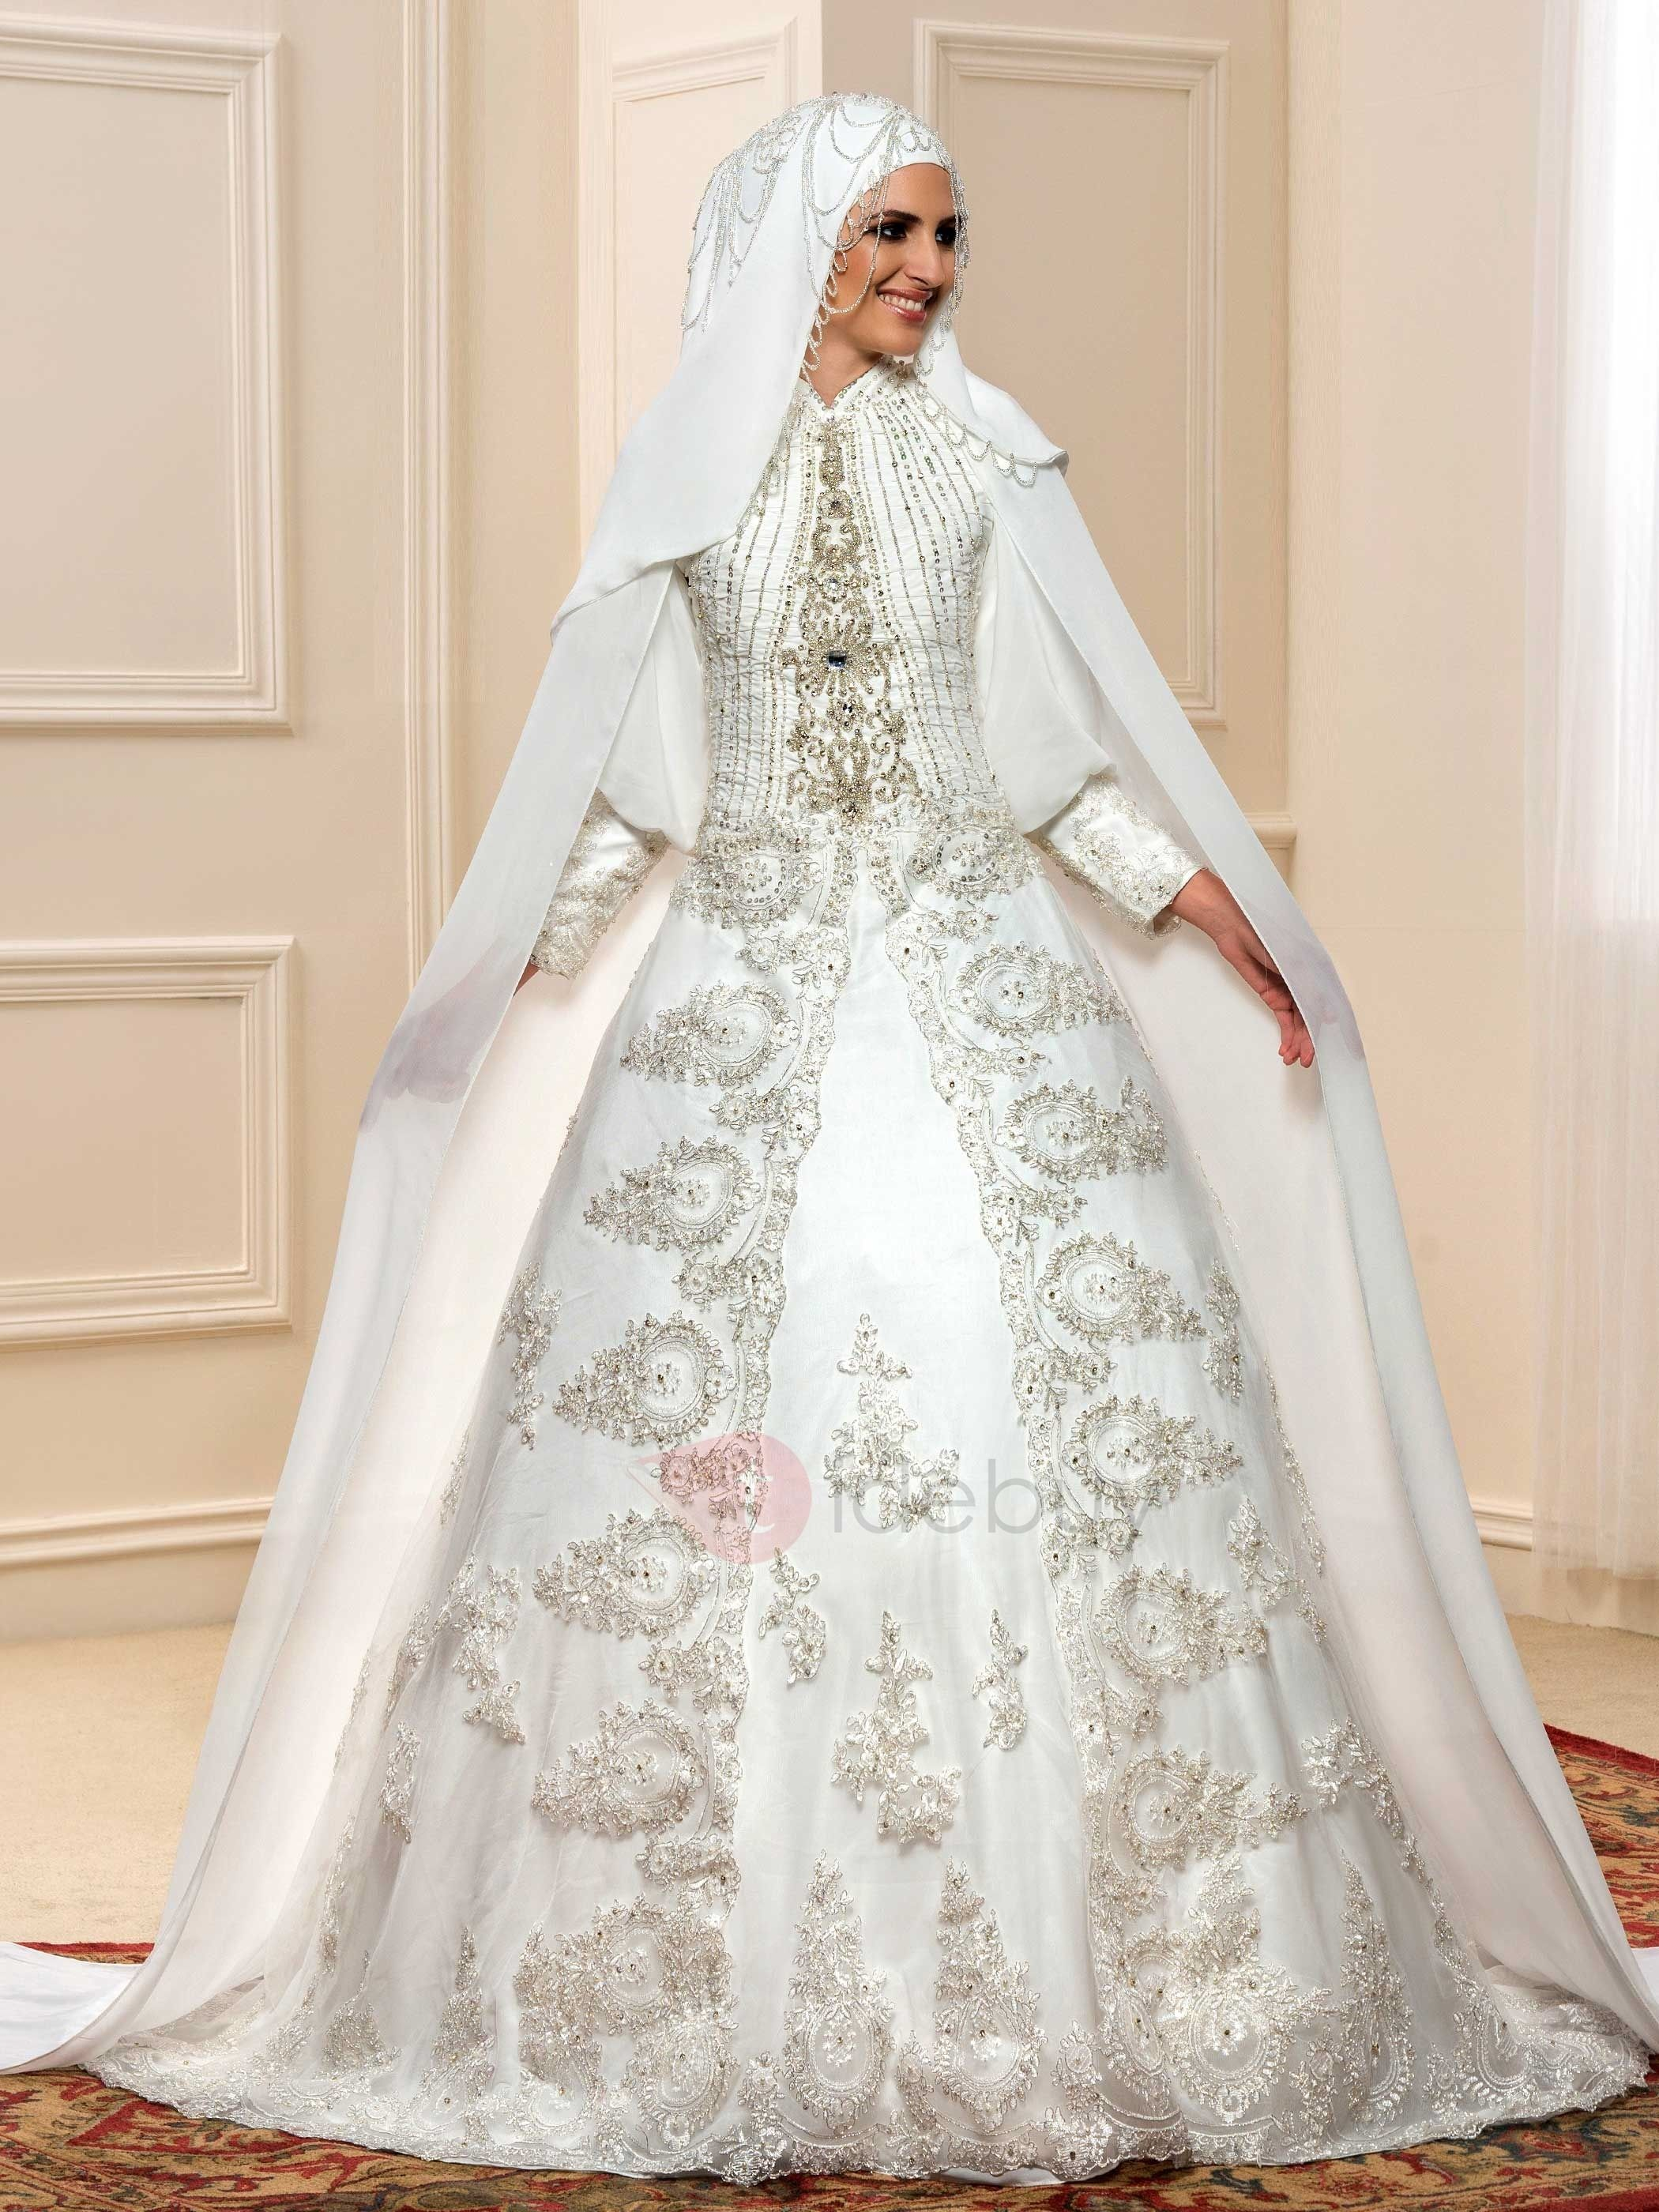 Tidebuy.com Offers High Quality Luxury Beaded Lace High Neck Muslim Wedding  Dress with Sleeves 0f3f04b17b4d